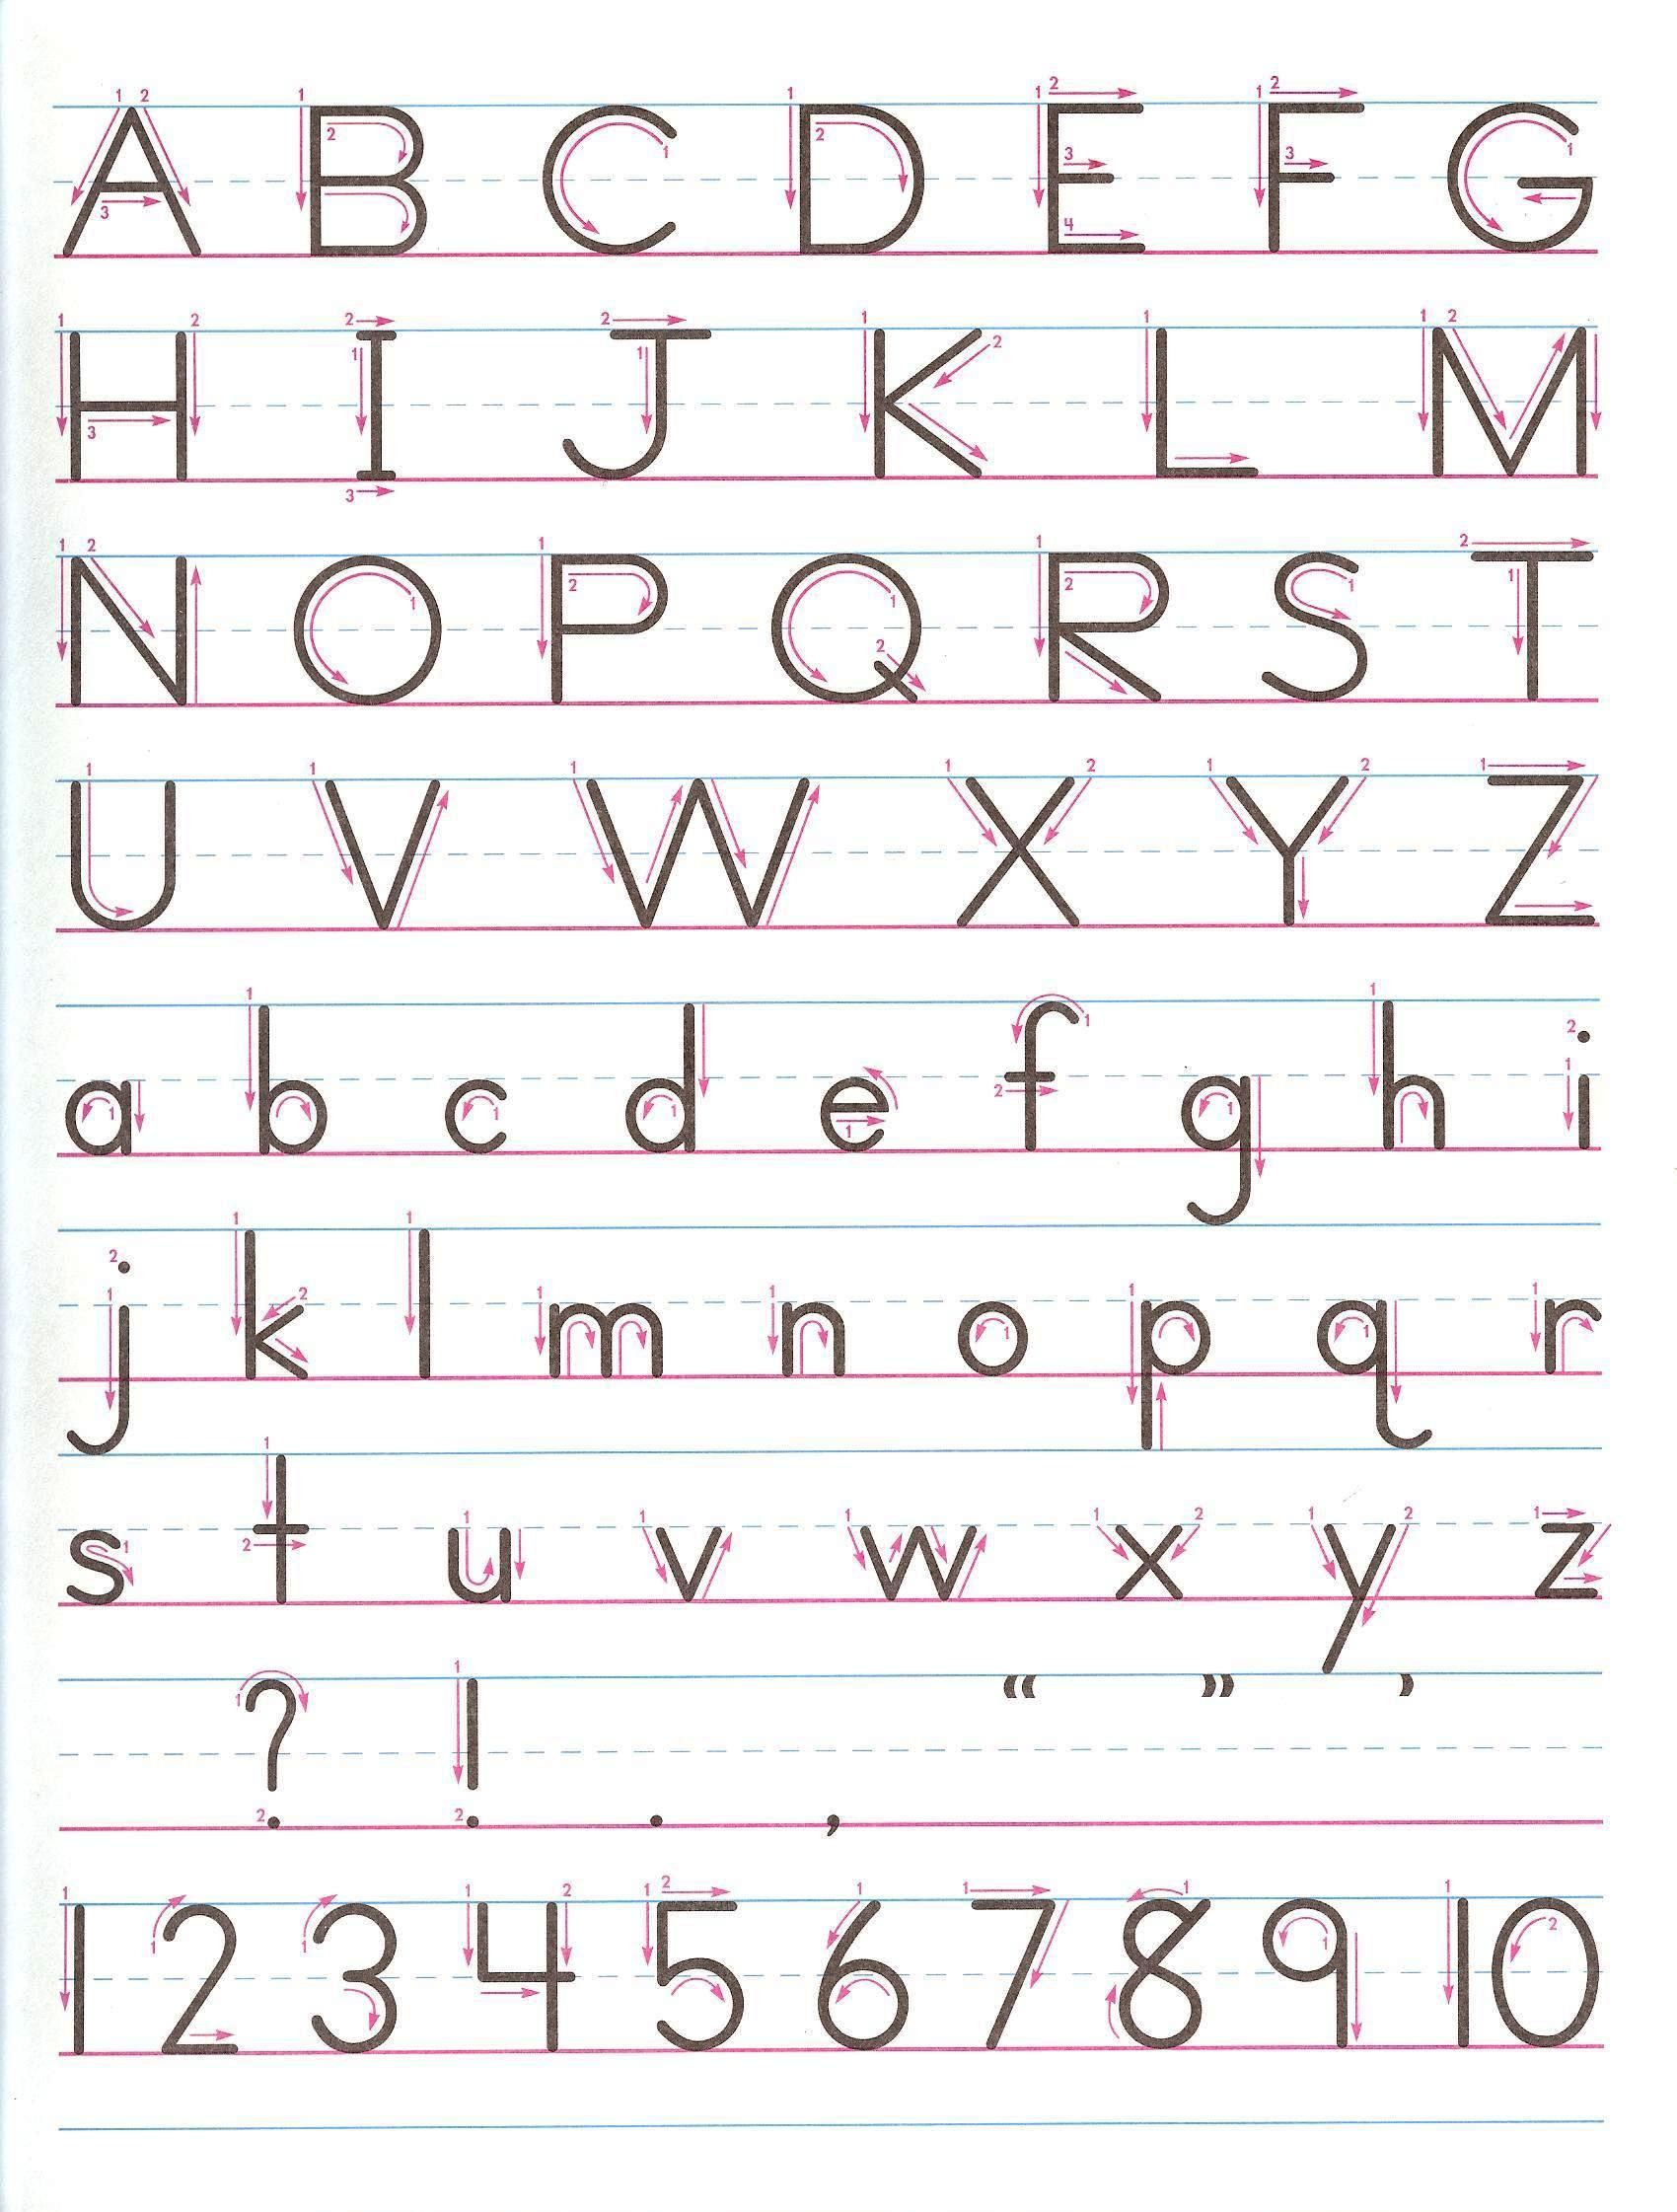 Zaner Bloser Handwriting Chart Printable